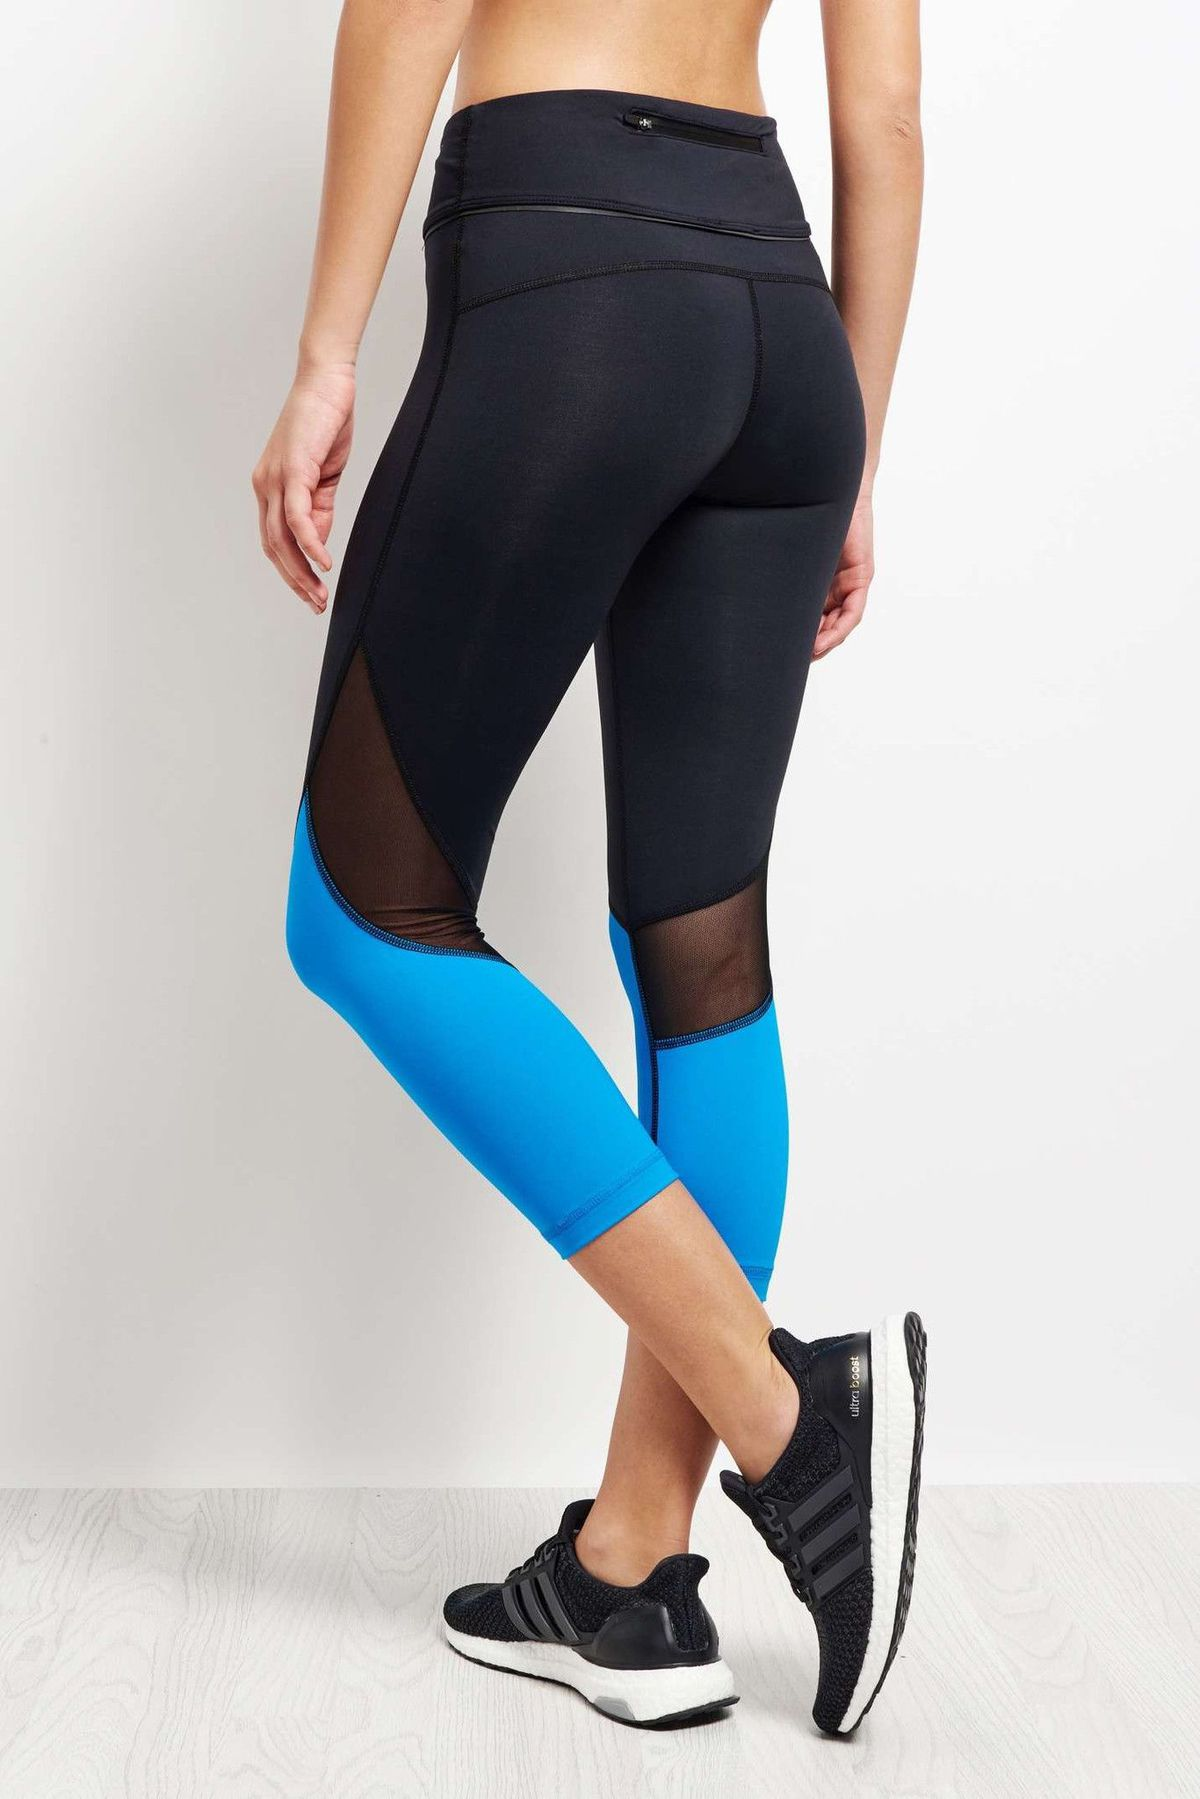 1fb609c67628a A woman in black and blue workout capris with mesh detail